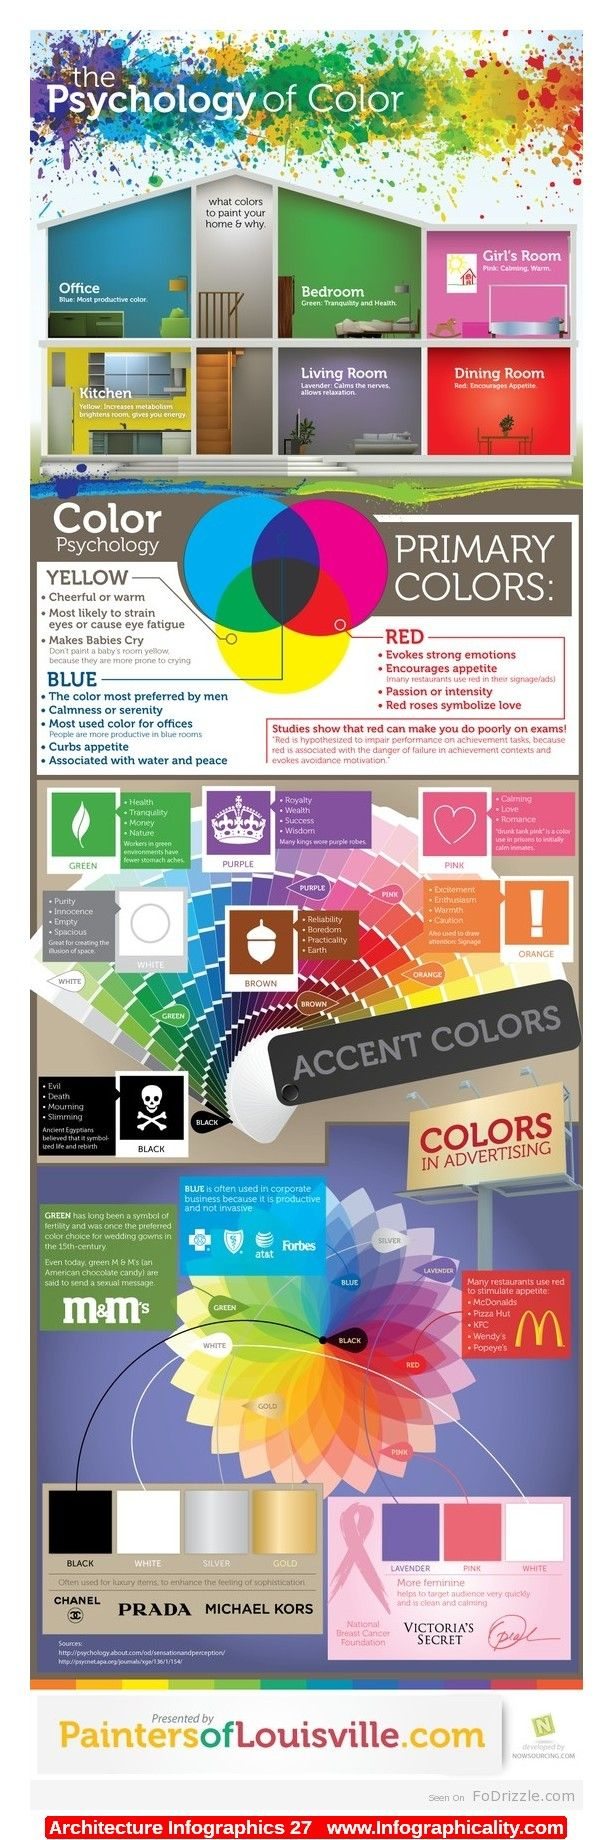 find this pin and more on architectural interior infographics psychology of color - Bedroom Color Psychology